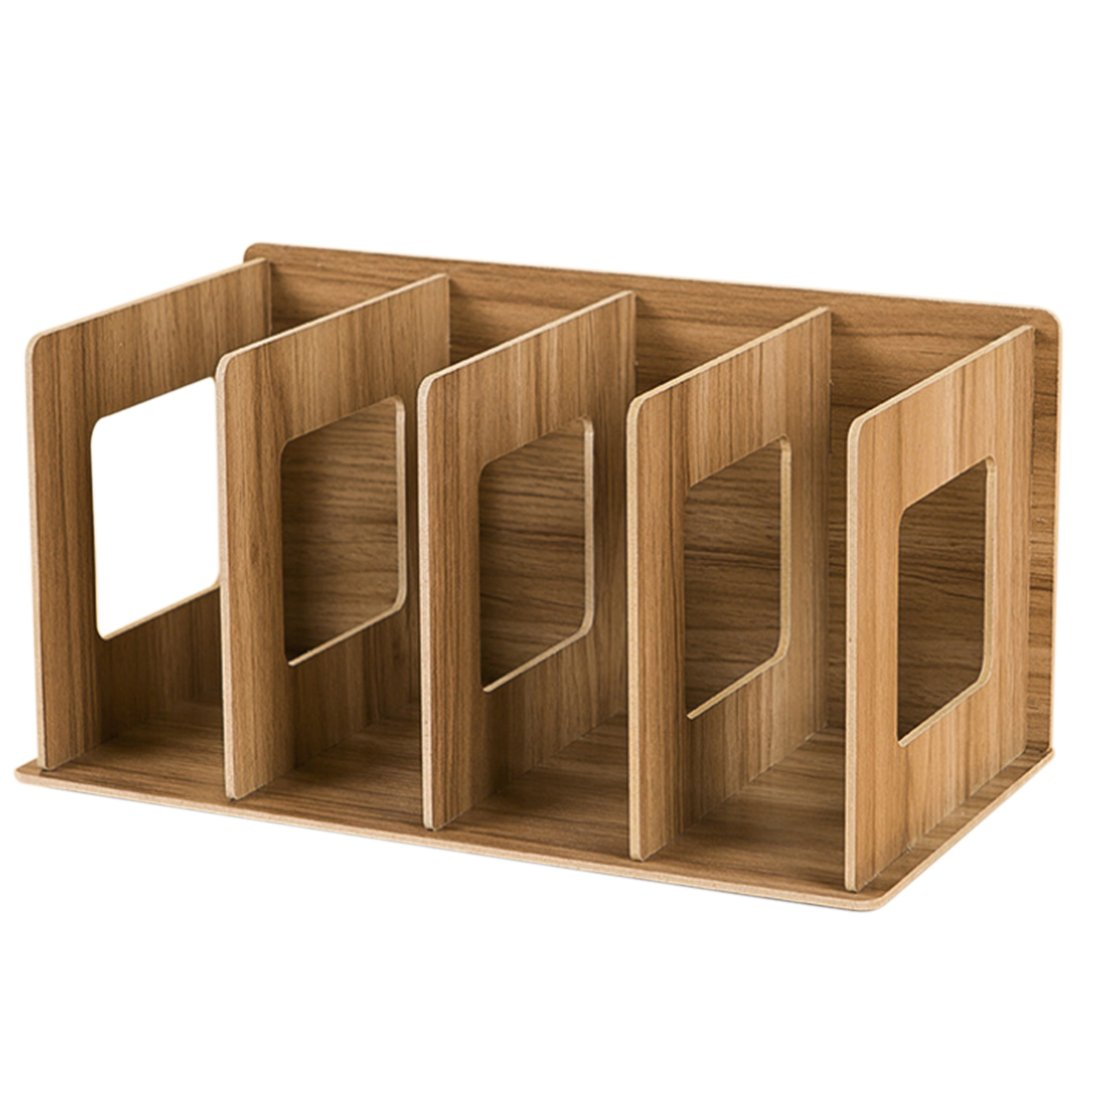 itechor wooden cd racks desktop storage organizer office shelves holder for 190550777498 ebay. Black Bedroom Furniture Sets. Home Design Ideas